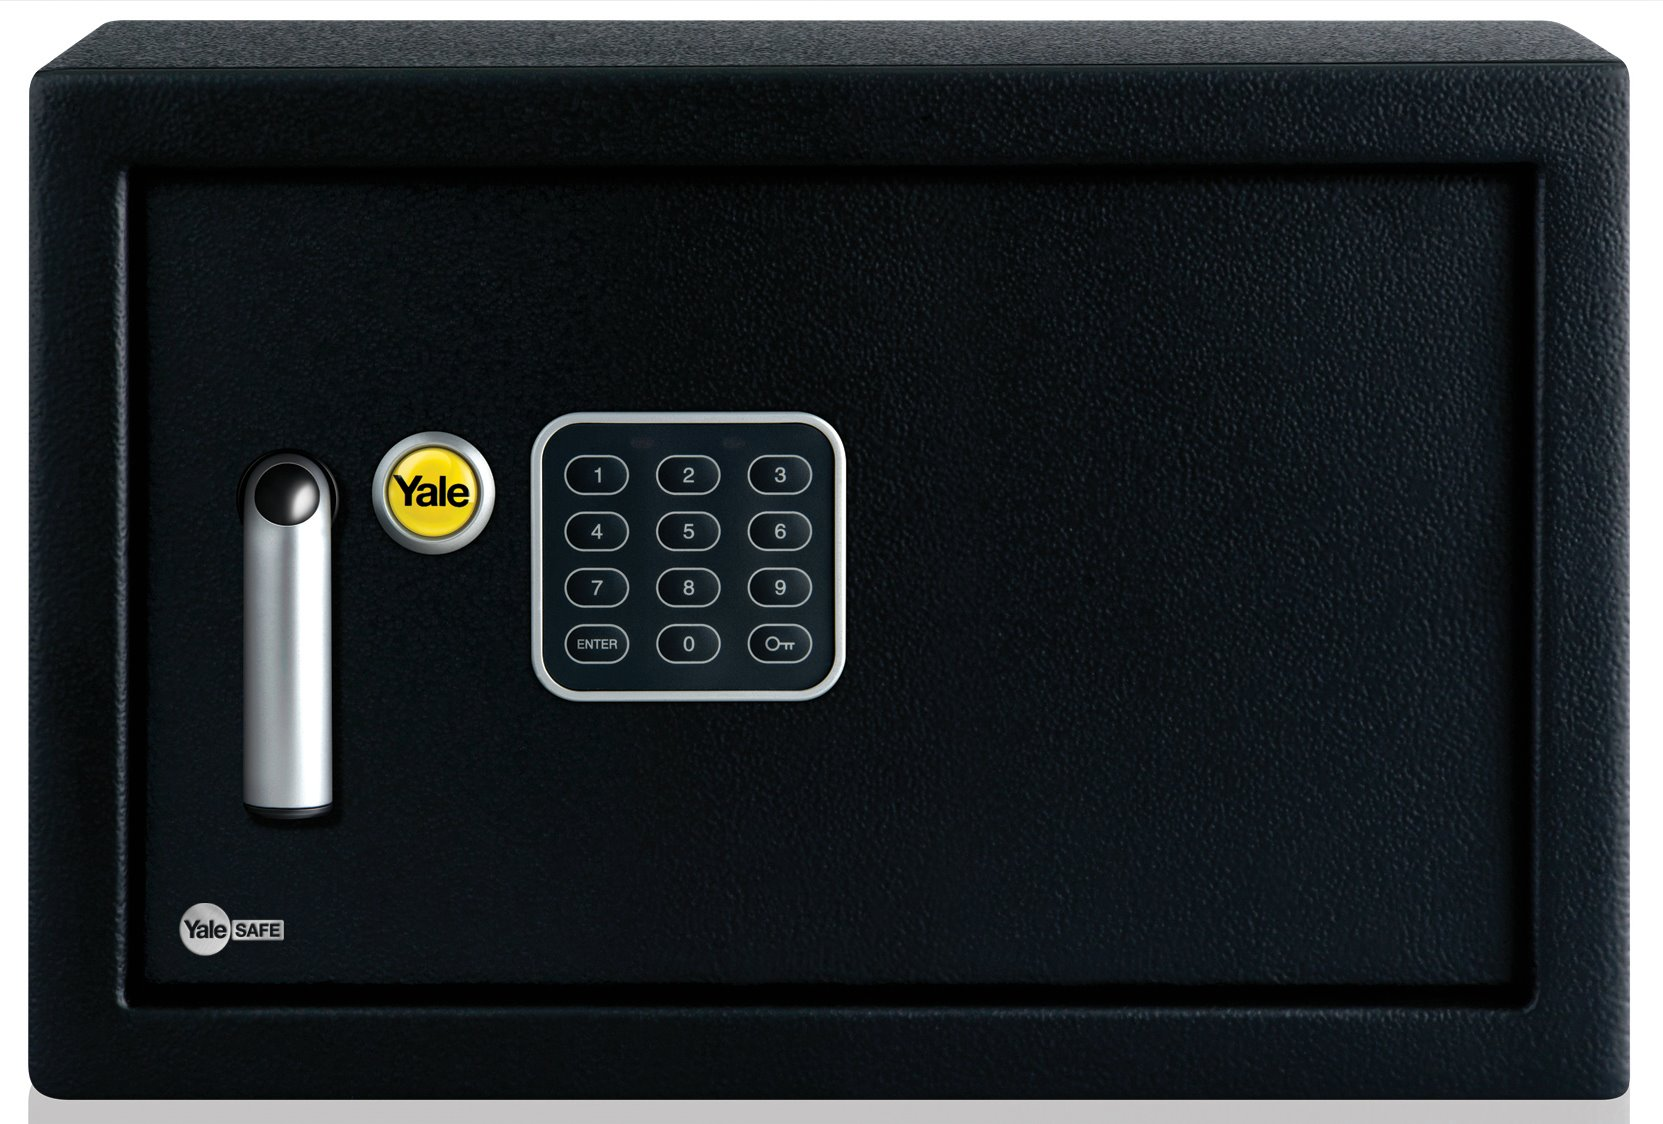 YSV/250/DB1 - Yale Home Electronic Safe Box (Medium)